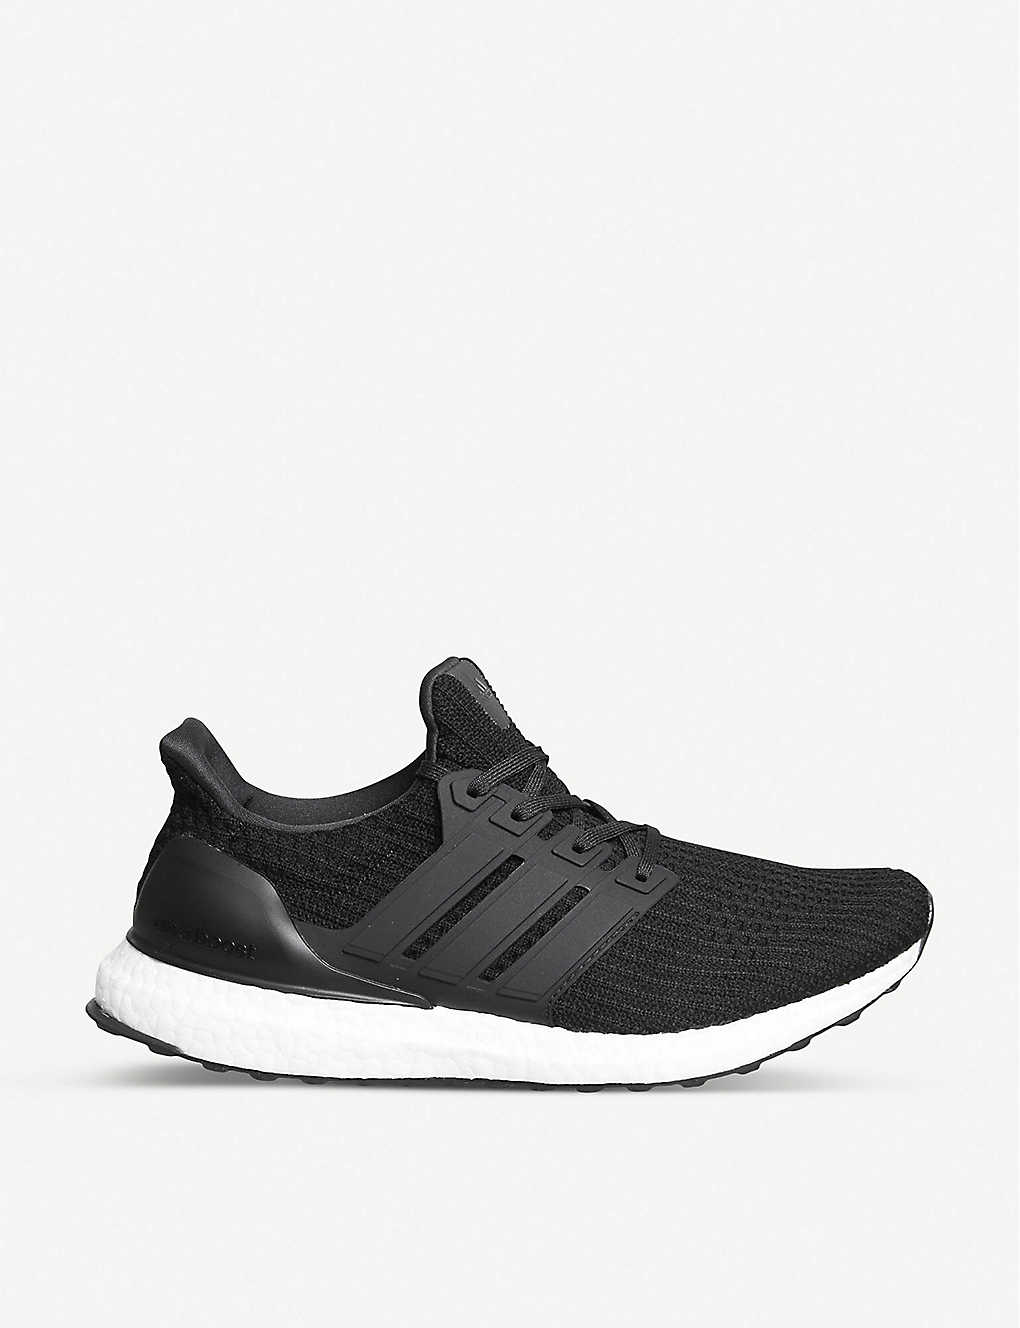 Ultra Boost Primeknit trainers